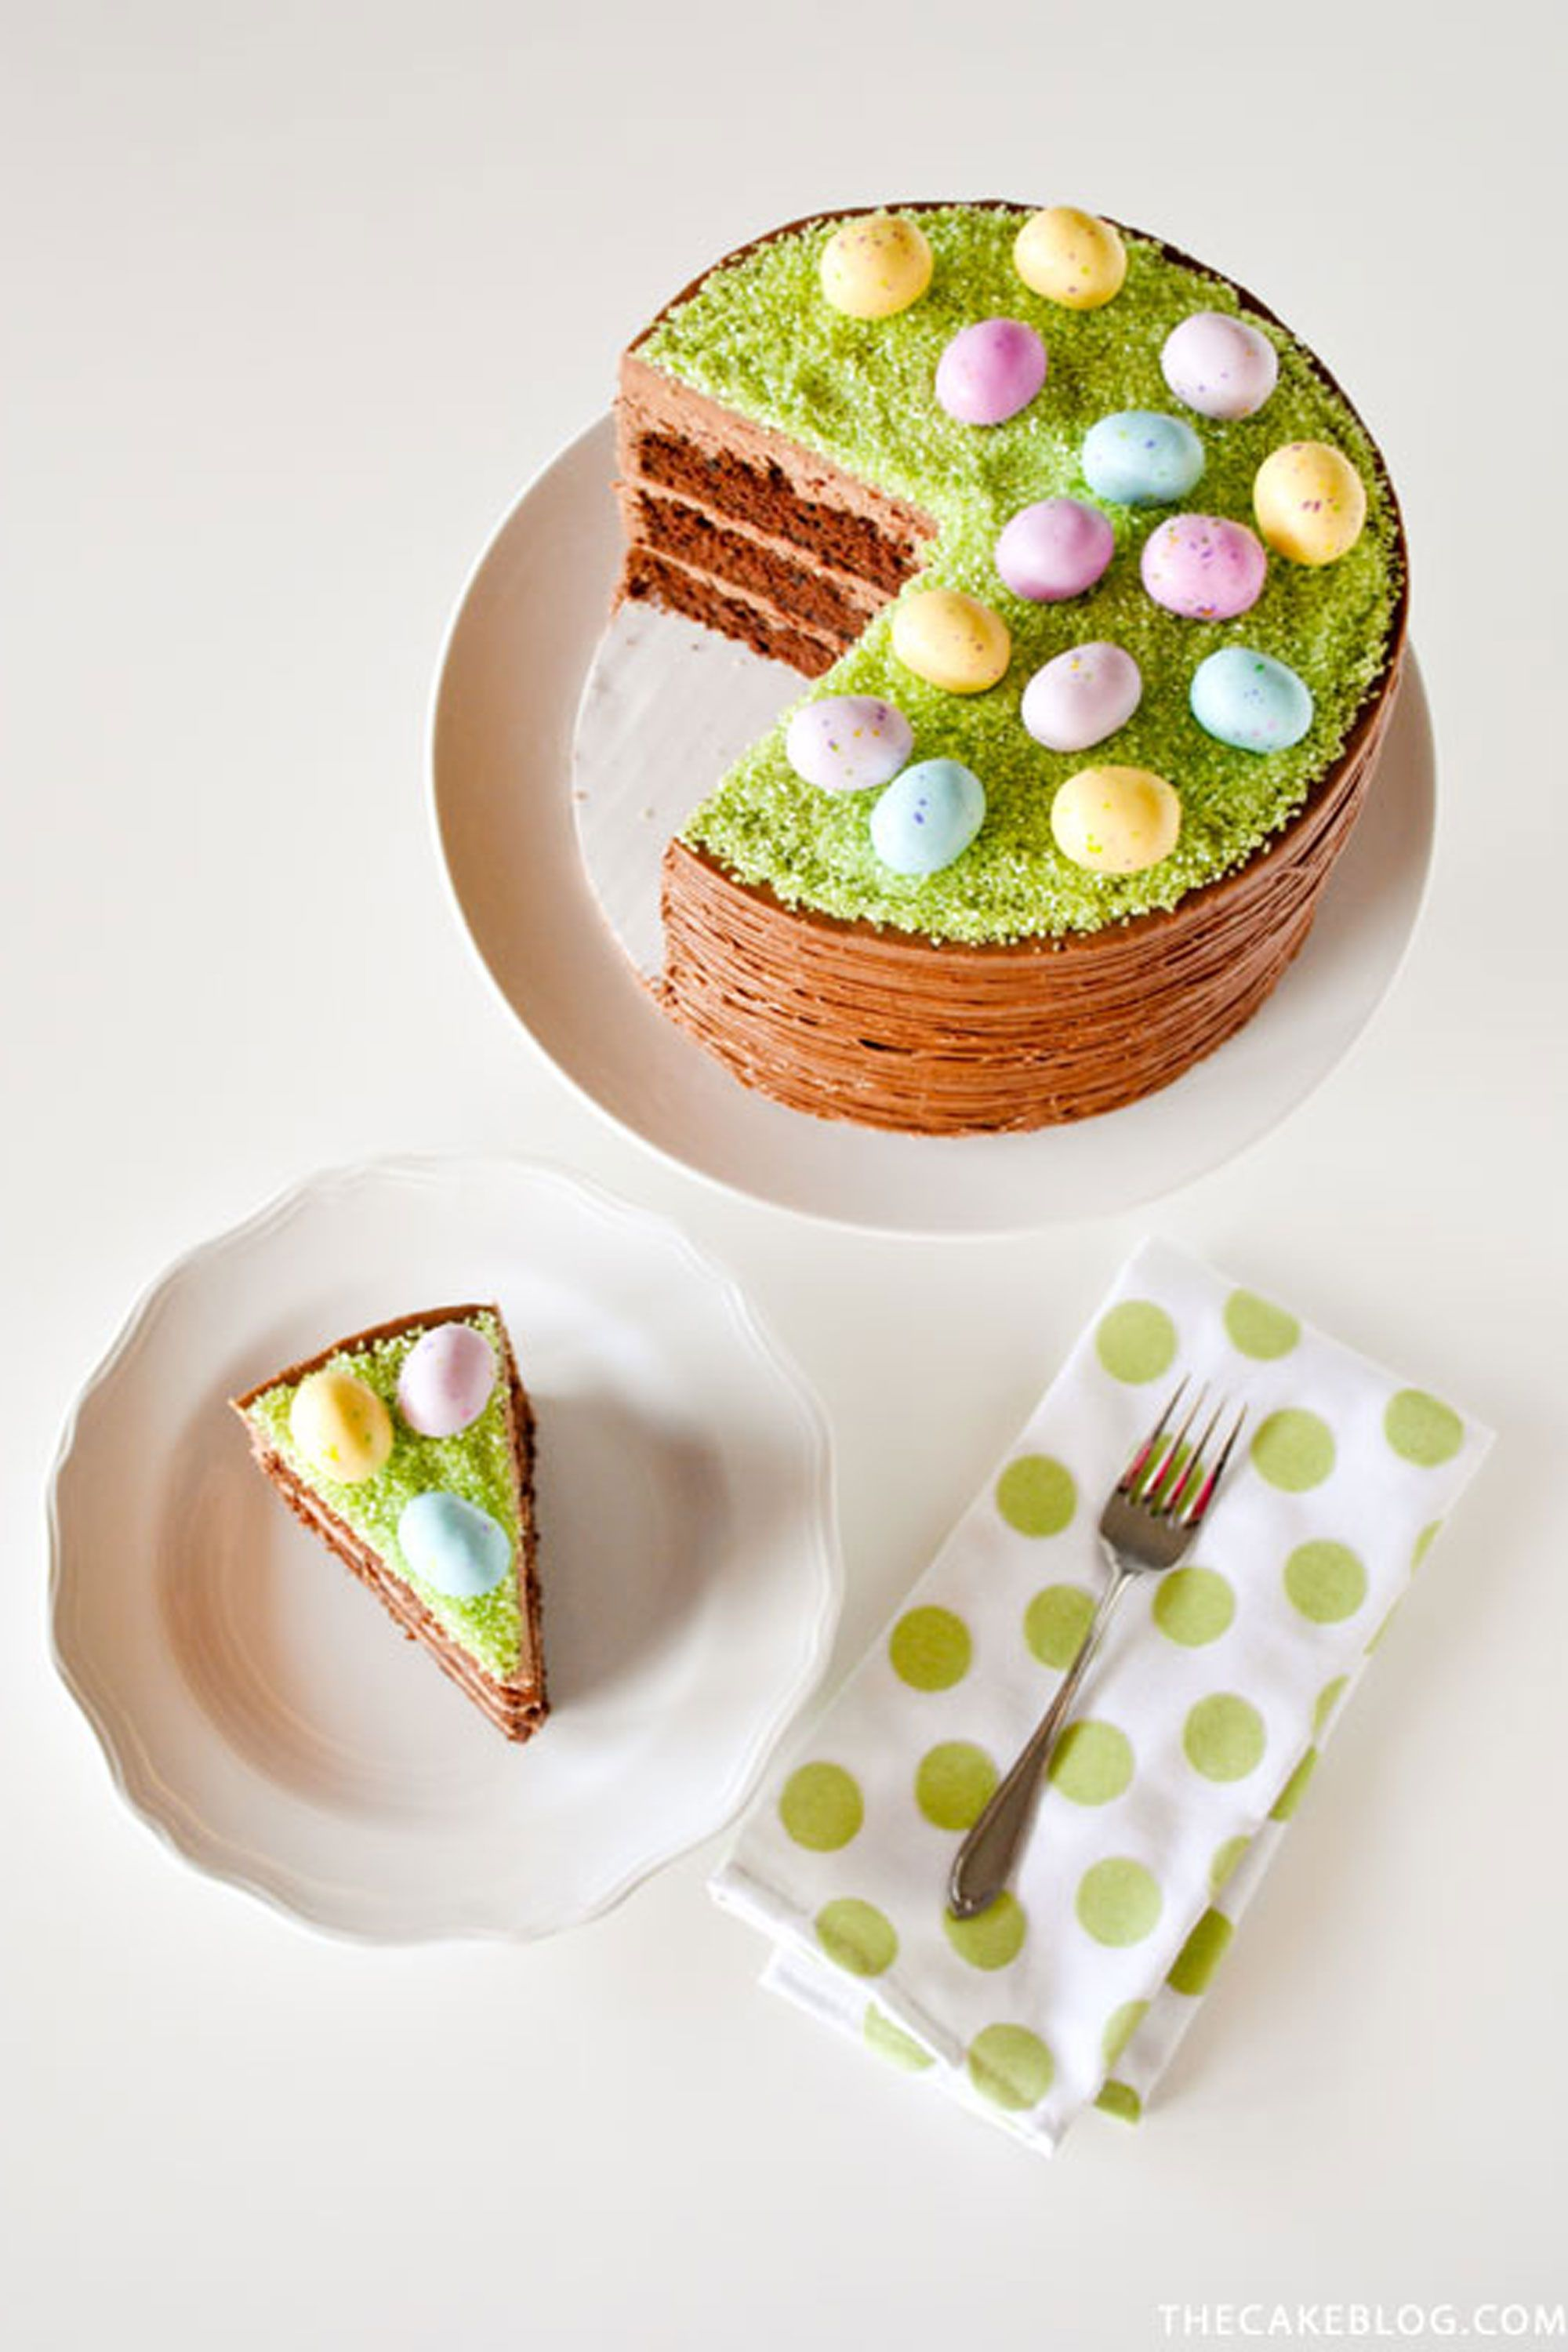 55 easy easter cakes and desserts recipes best ideas for easter 55 easy easter cakes and desserts recipes best ideas for easter sweets negle Choice Image